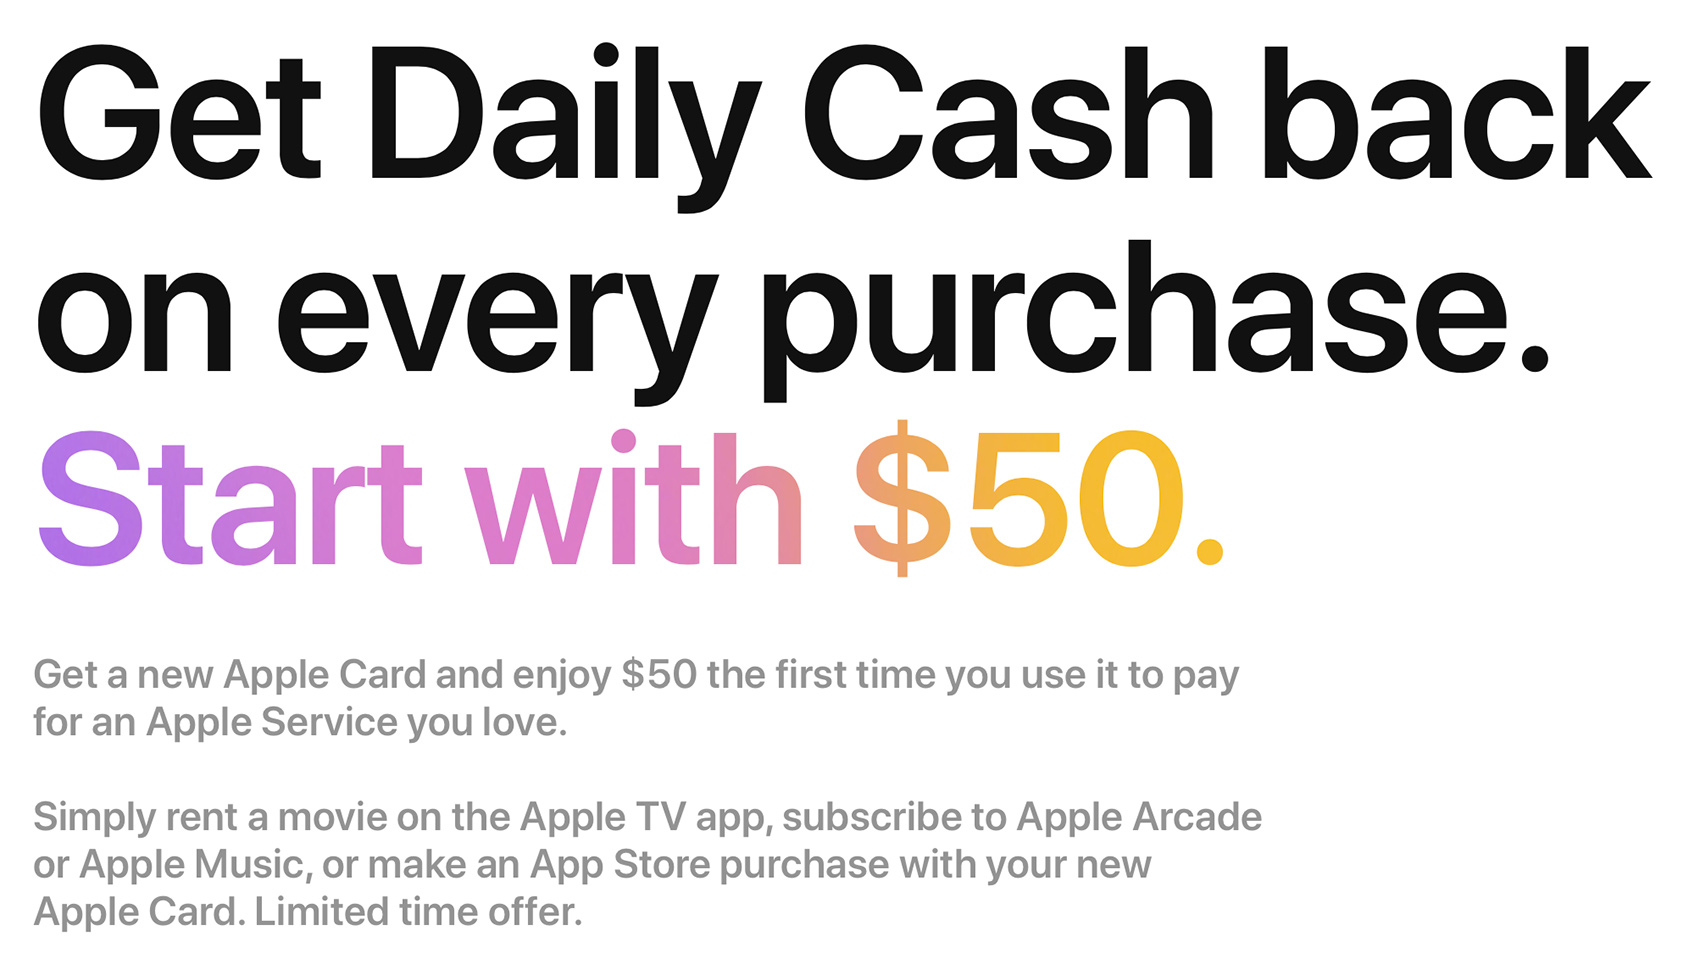 photo of Apple Card Promo Offers New Users $50 in Daily Cash for First Apple Service Purchase image